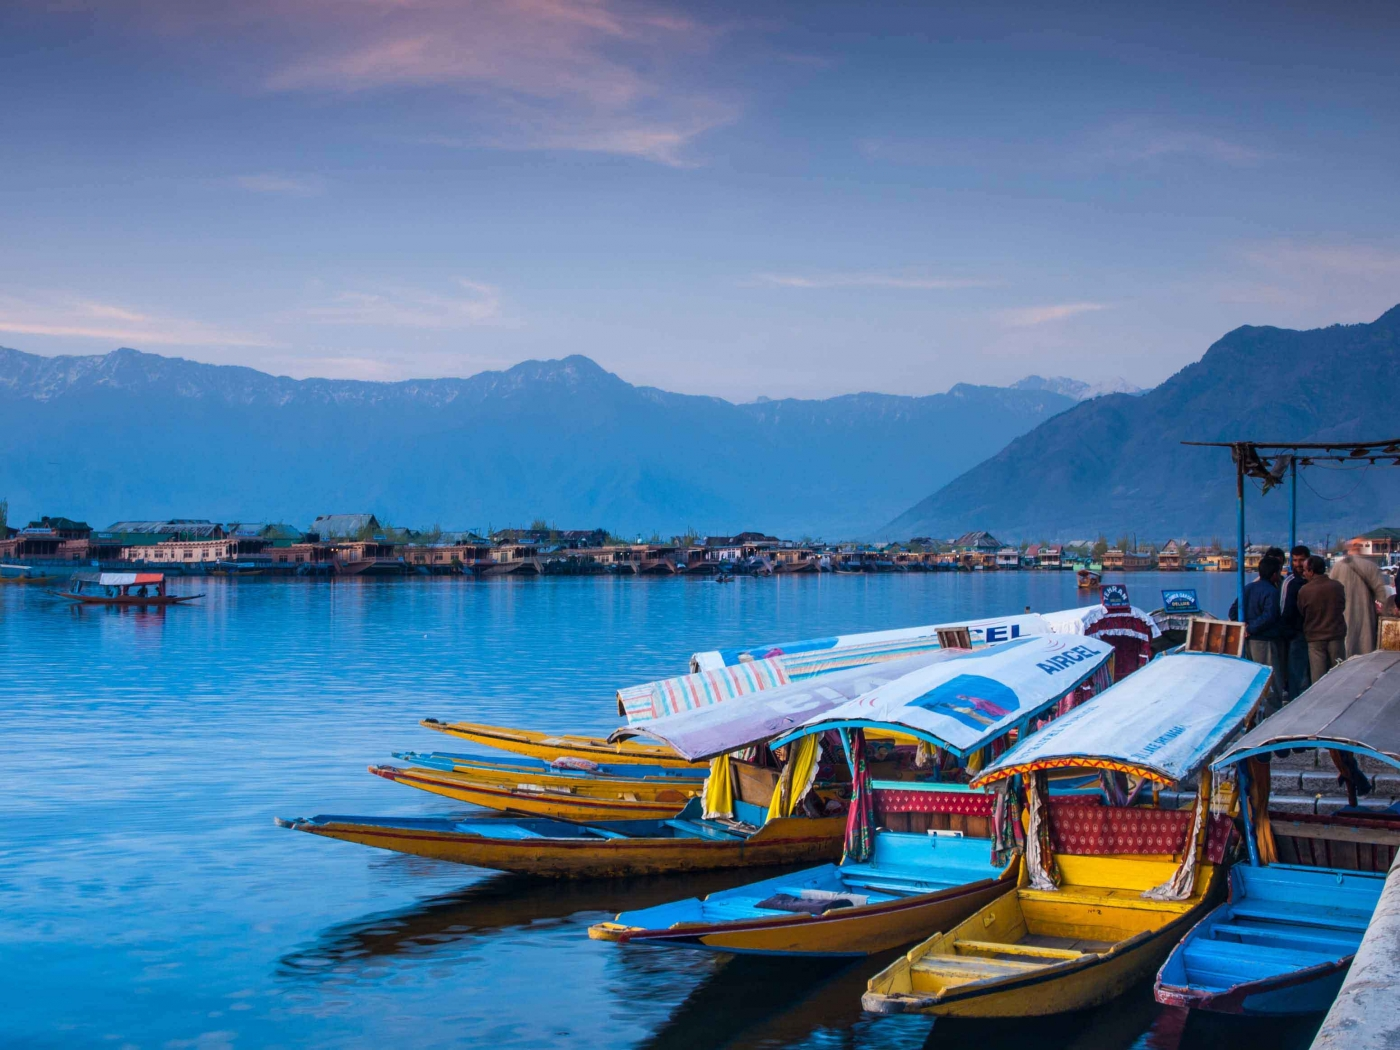 Things to See and Do in Srinagar